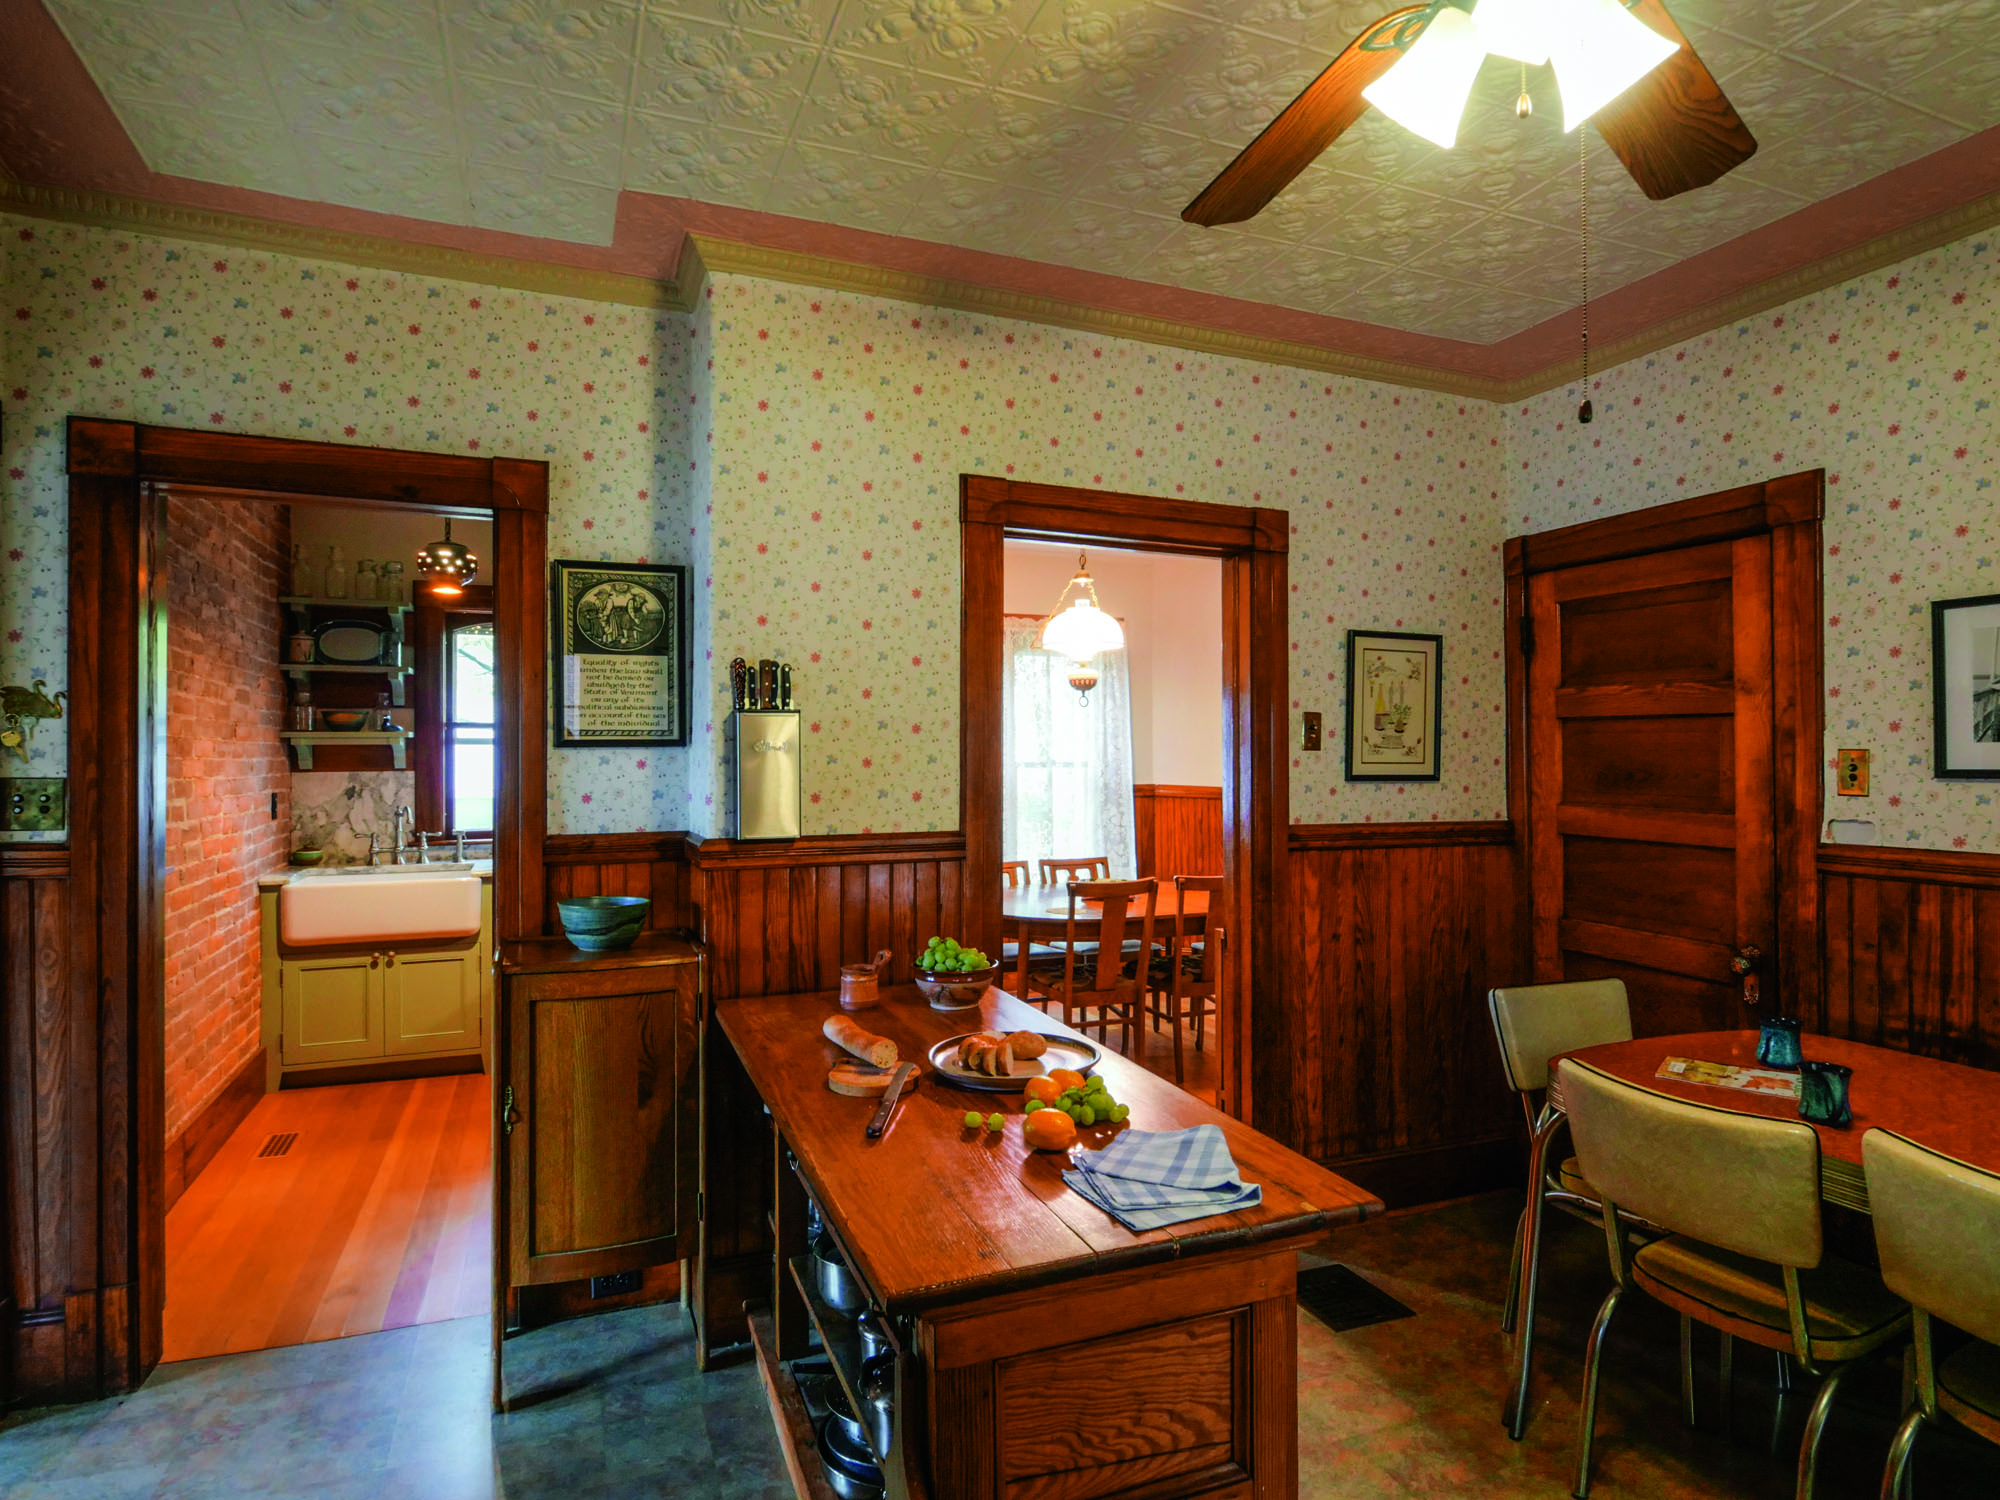 The kitchen is airy and old-fashioned with a stove at far left, a worktable as an island, and a small dining area to the right. With a big sink, the butler's pantry functions as a scullery.